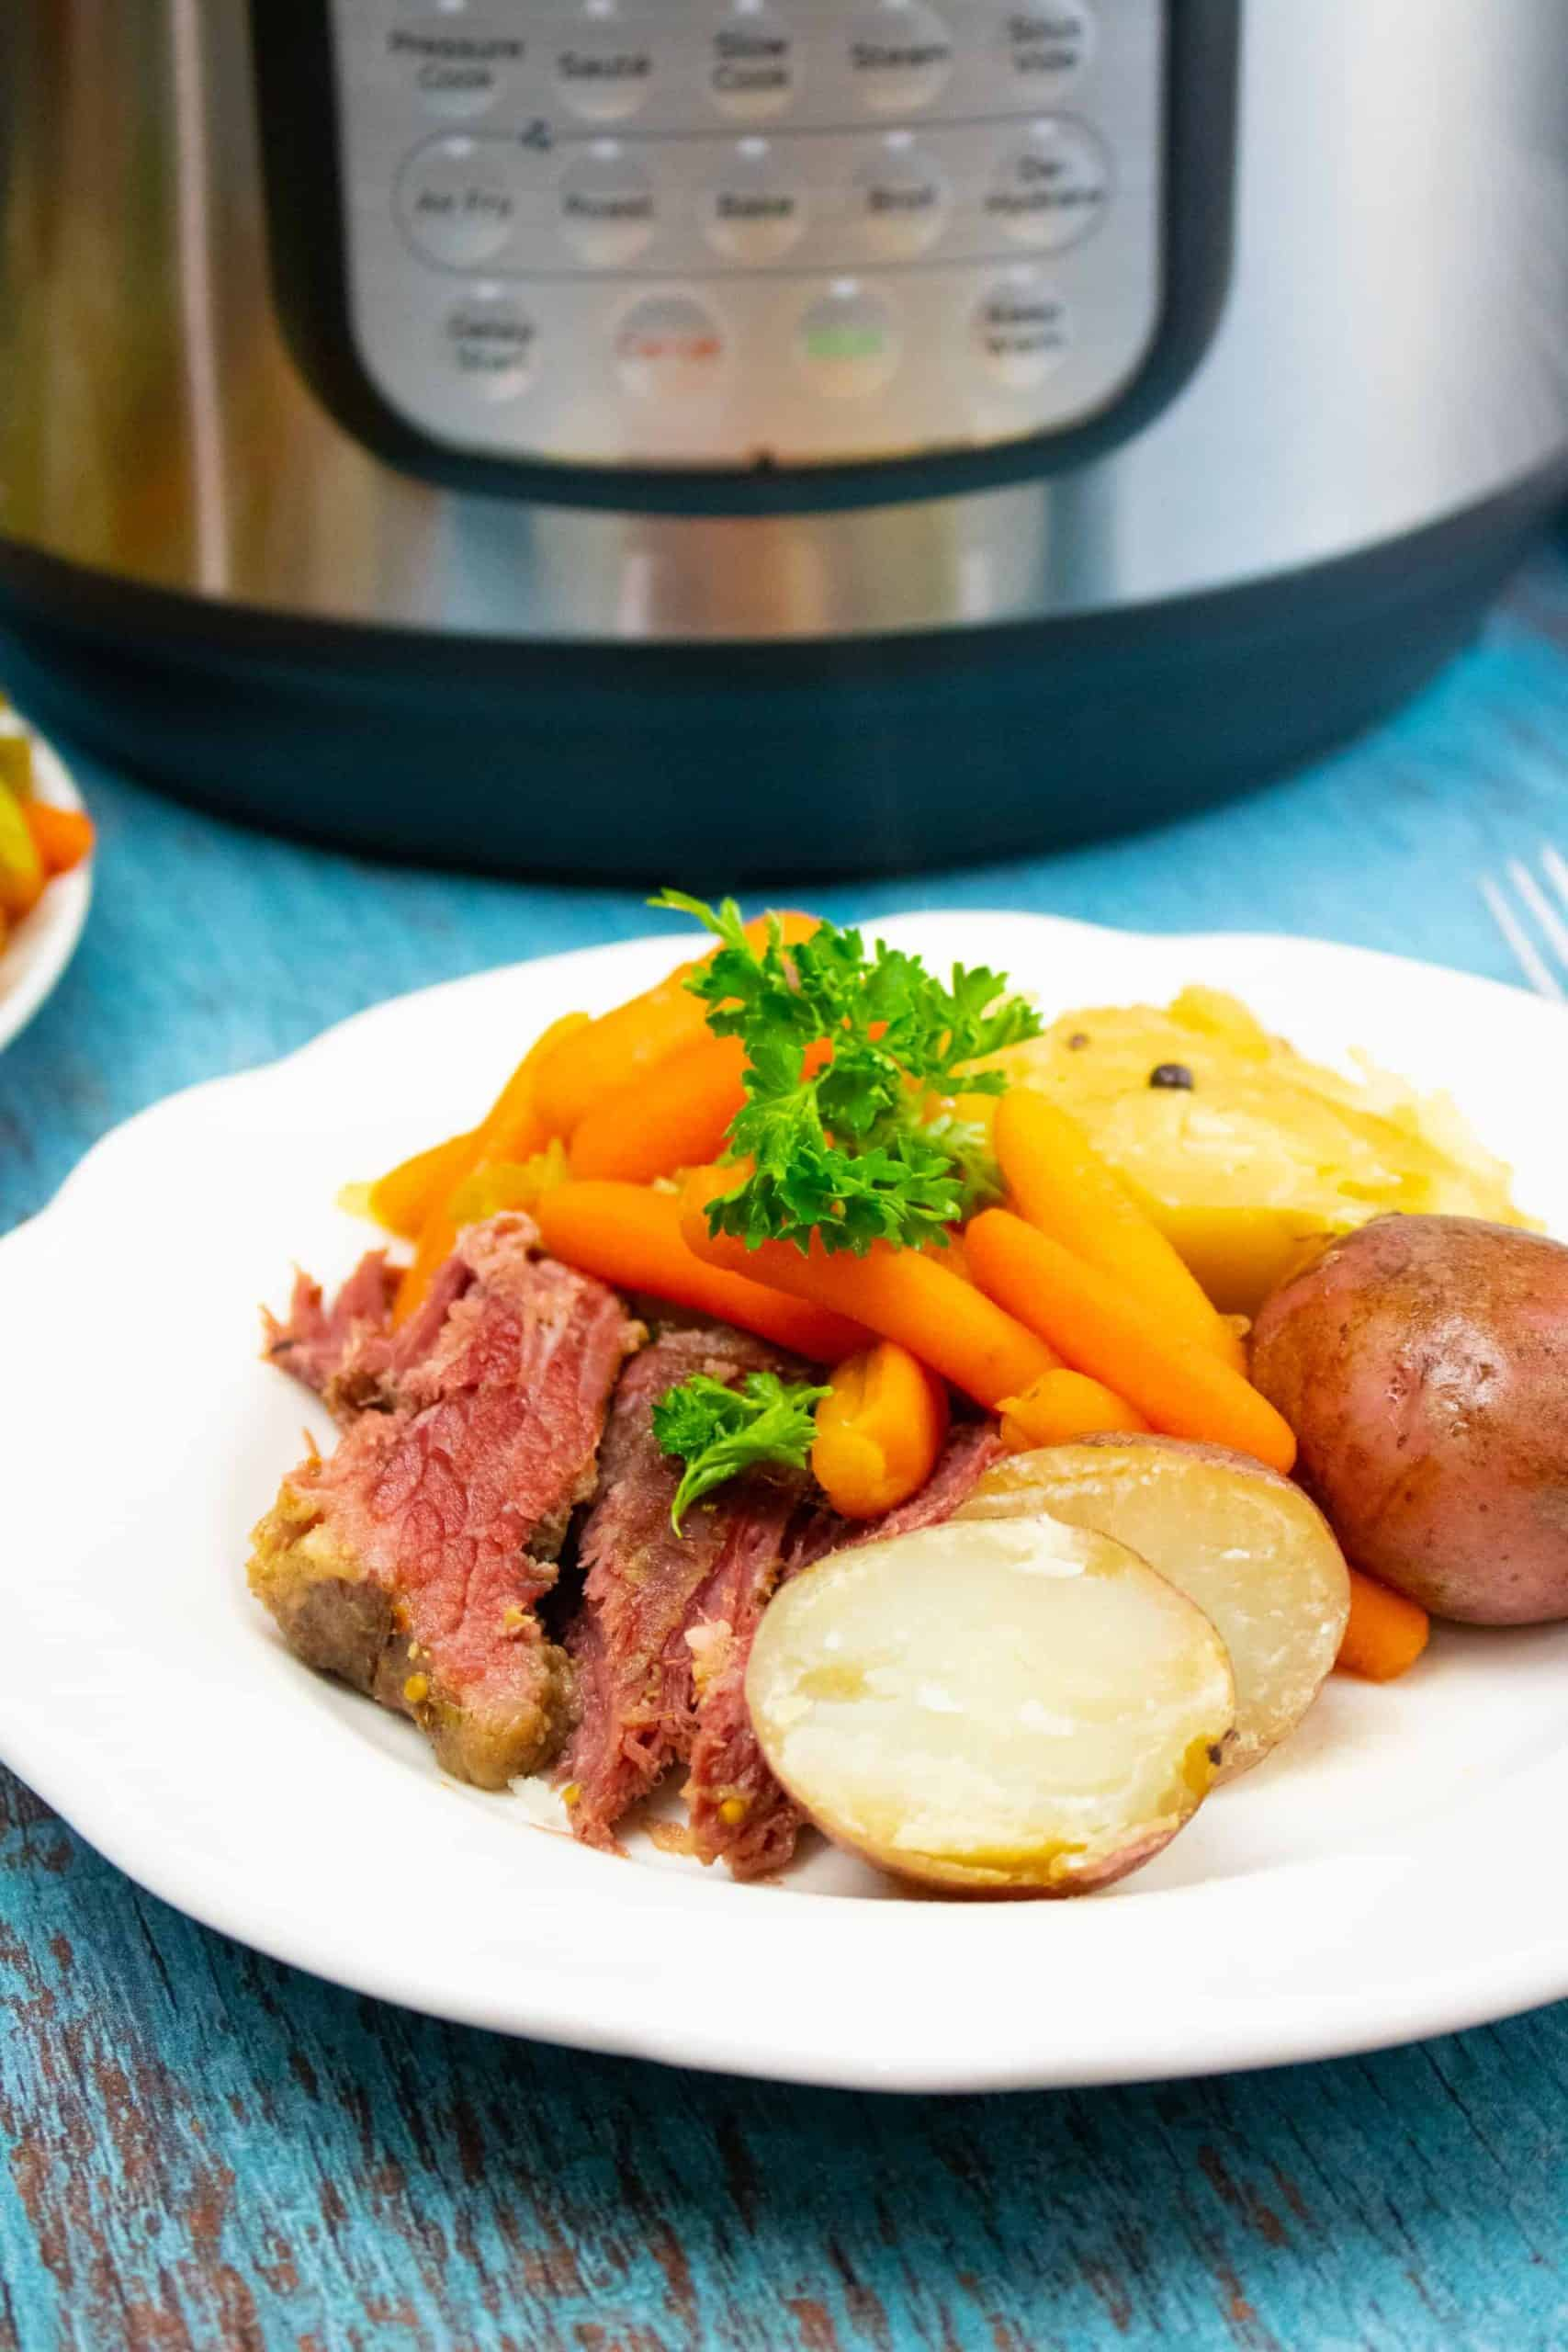 corned beef and carrots and potatoes on white plate